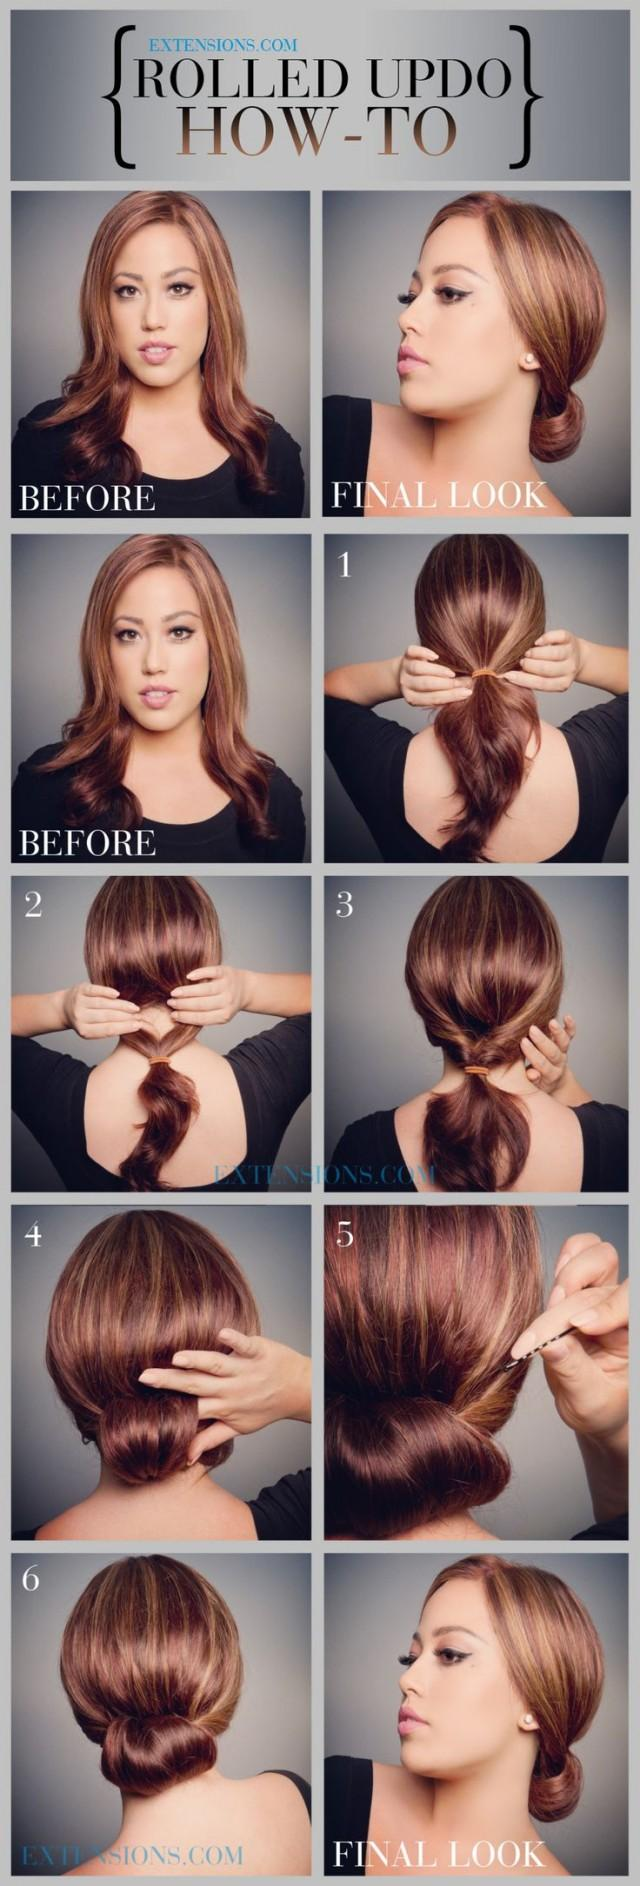 12 Trendy Low Bun Updo Hairstyles Tutorials Easy Cute Weddbook